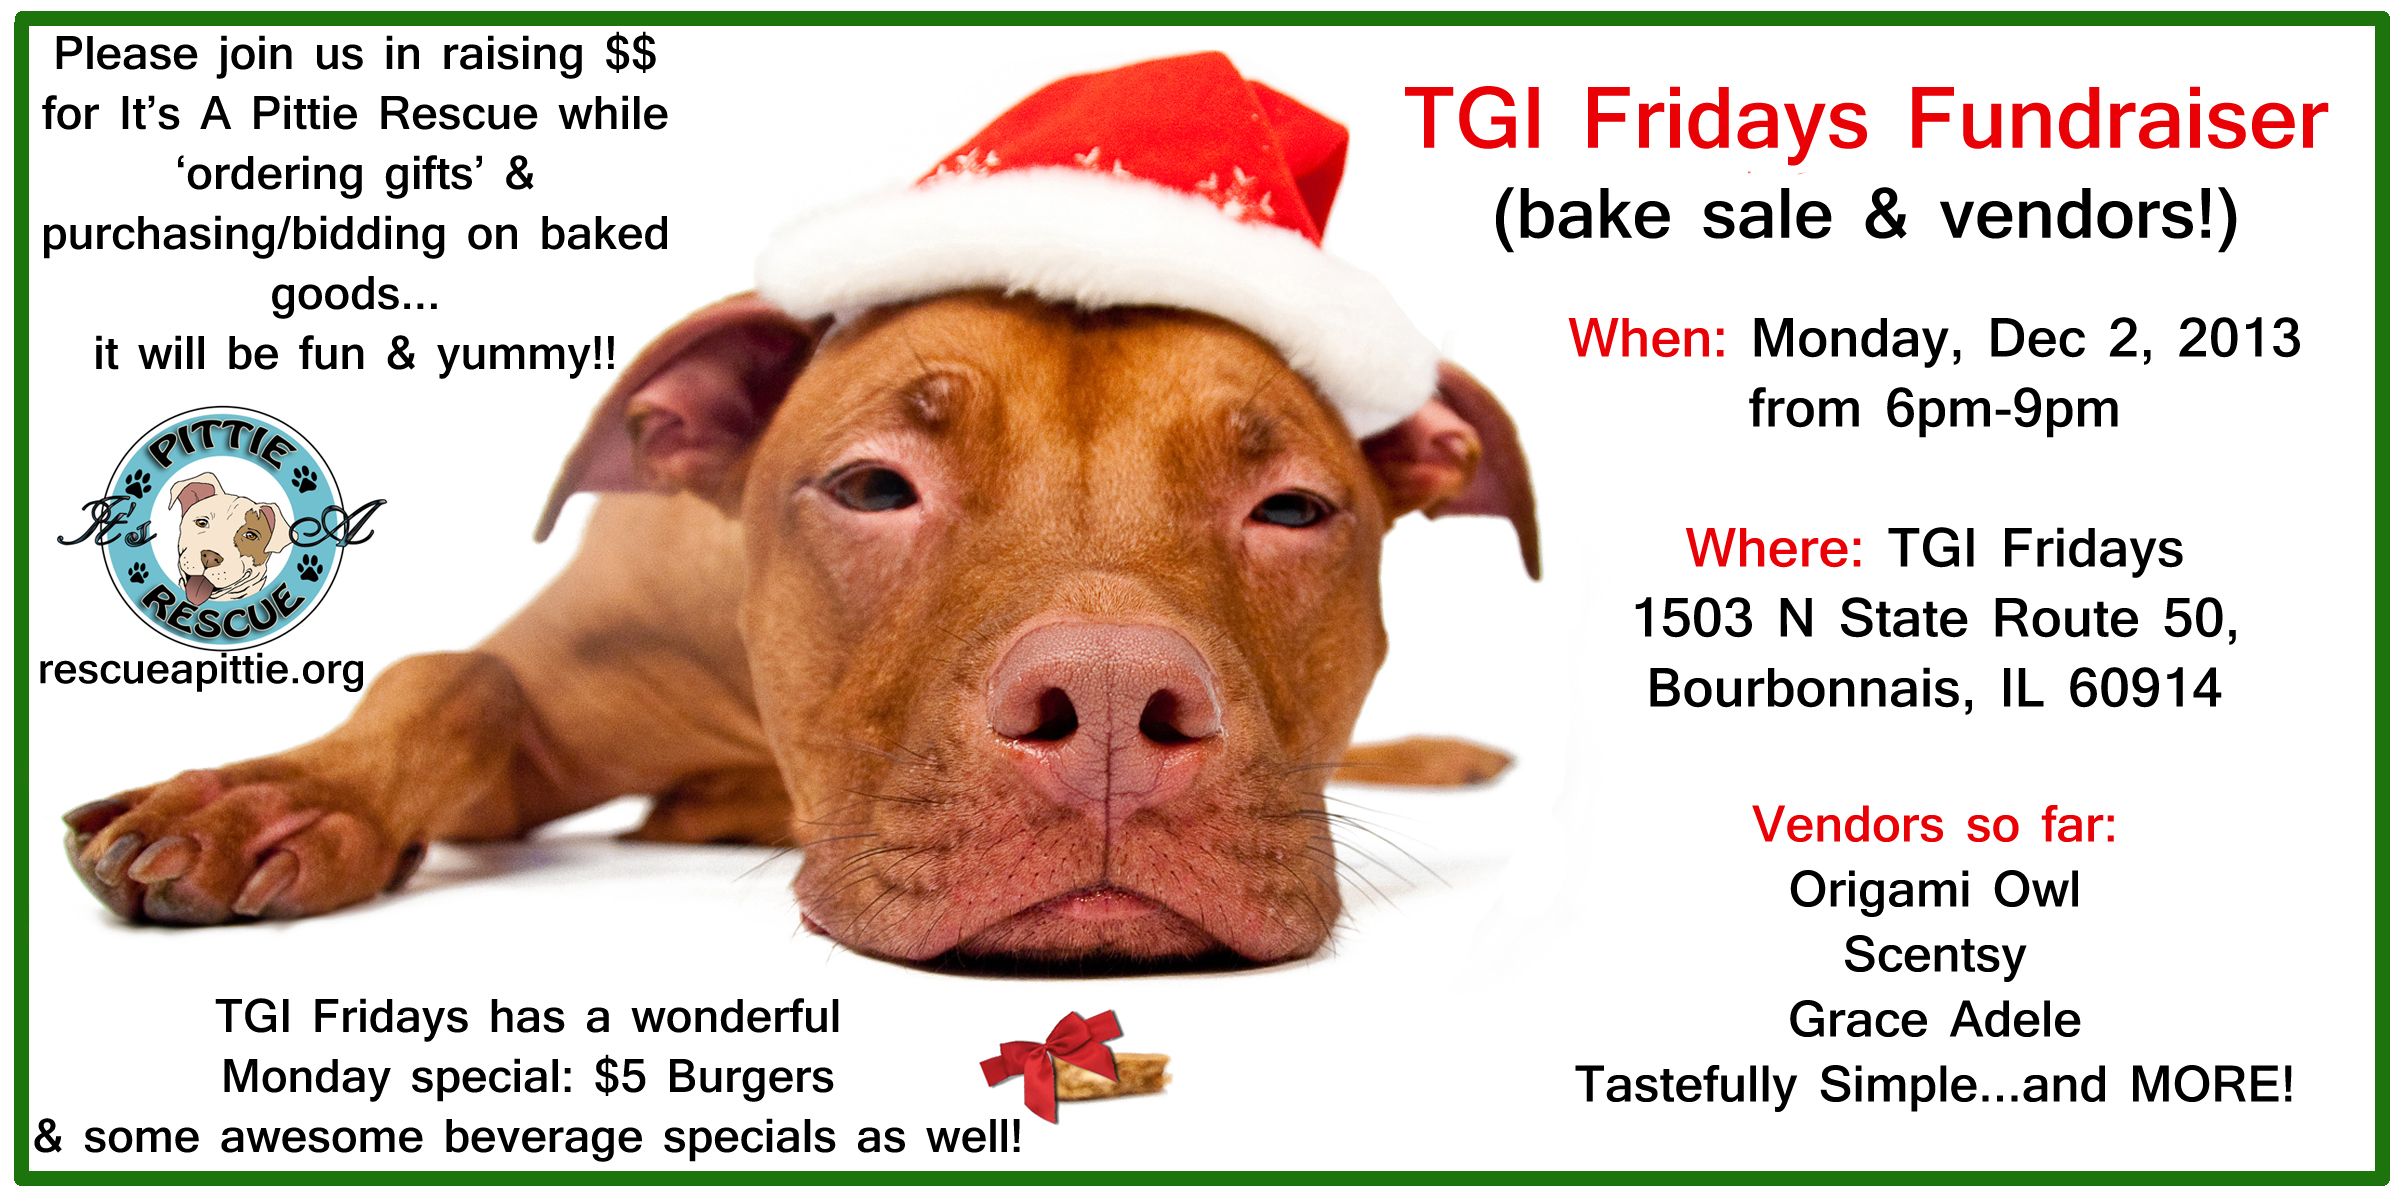 tgi fridays fundraiser bake vendors it s a pittie rescue facebook event page